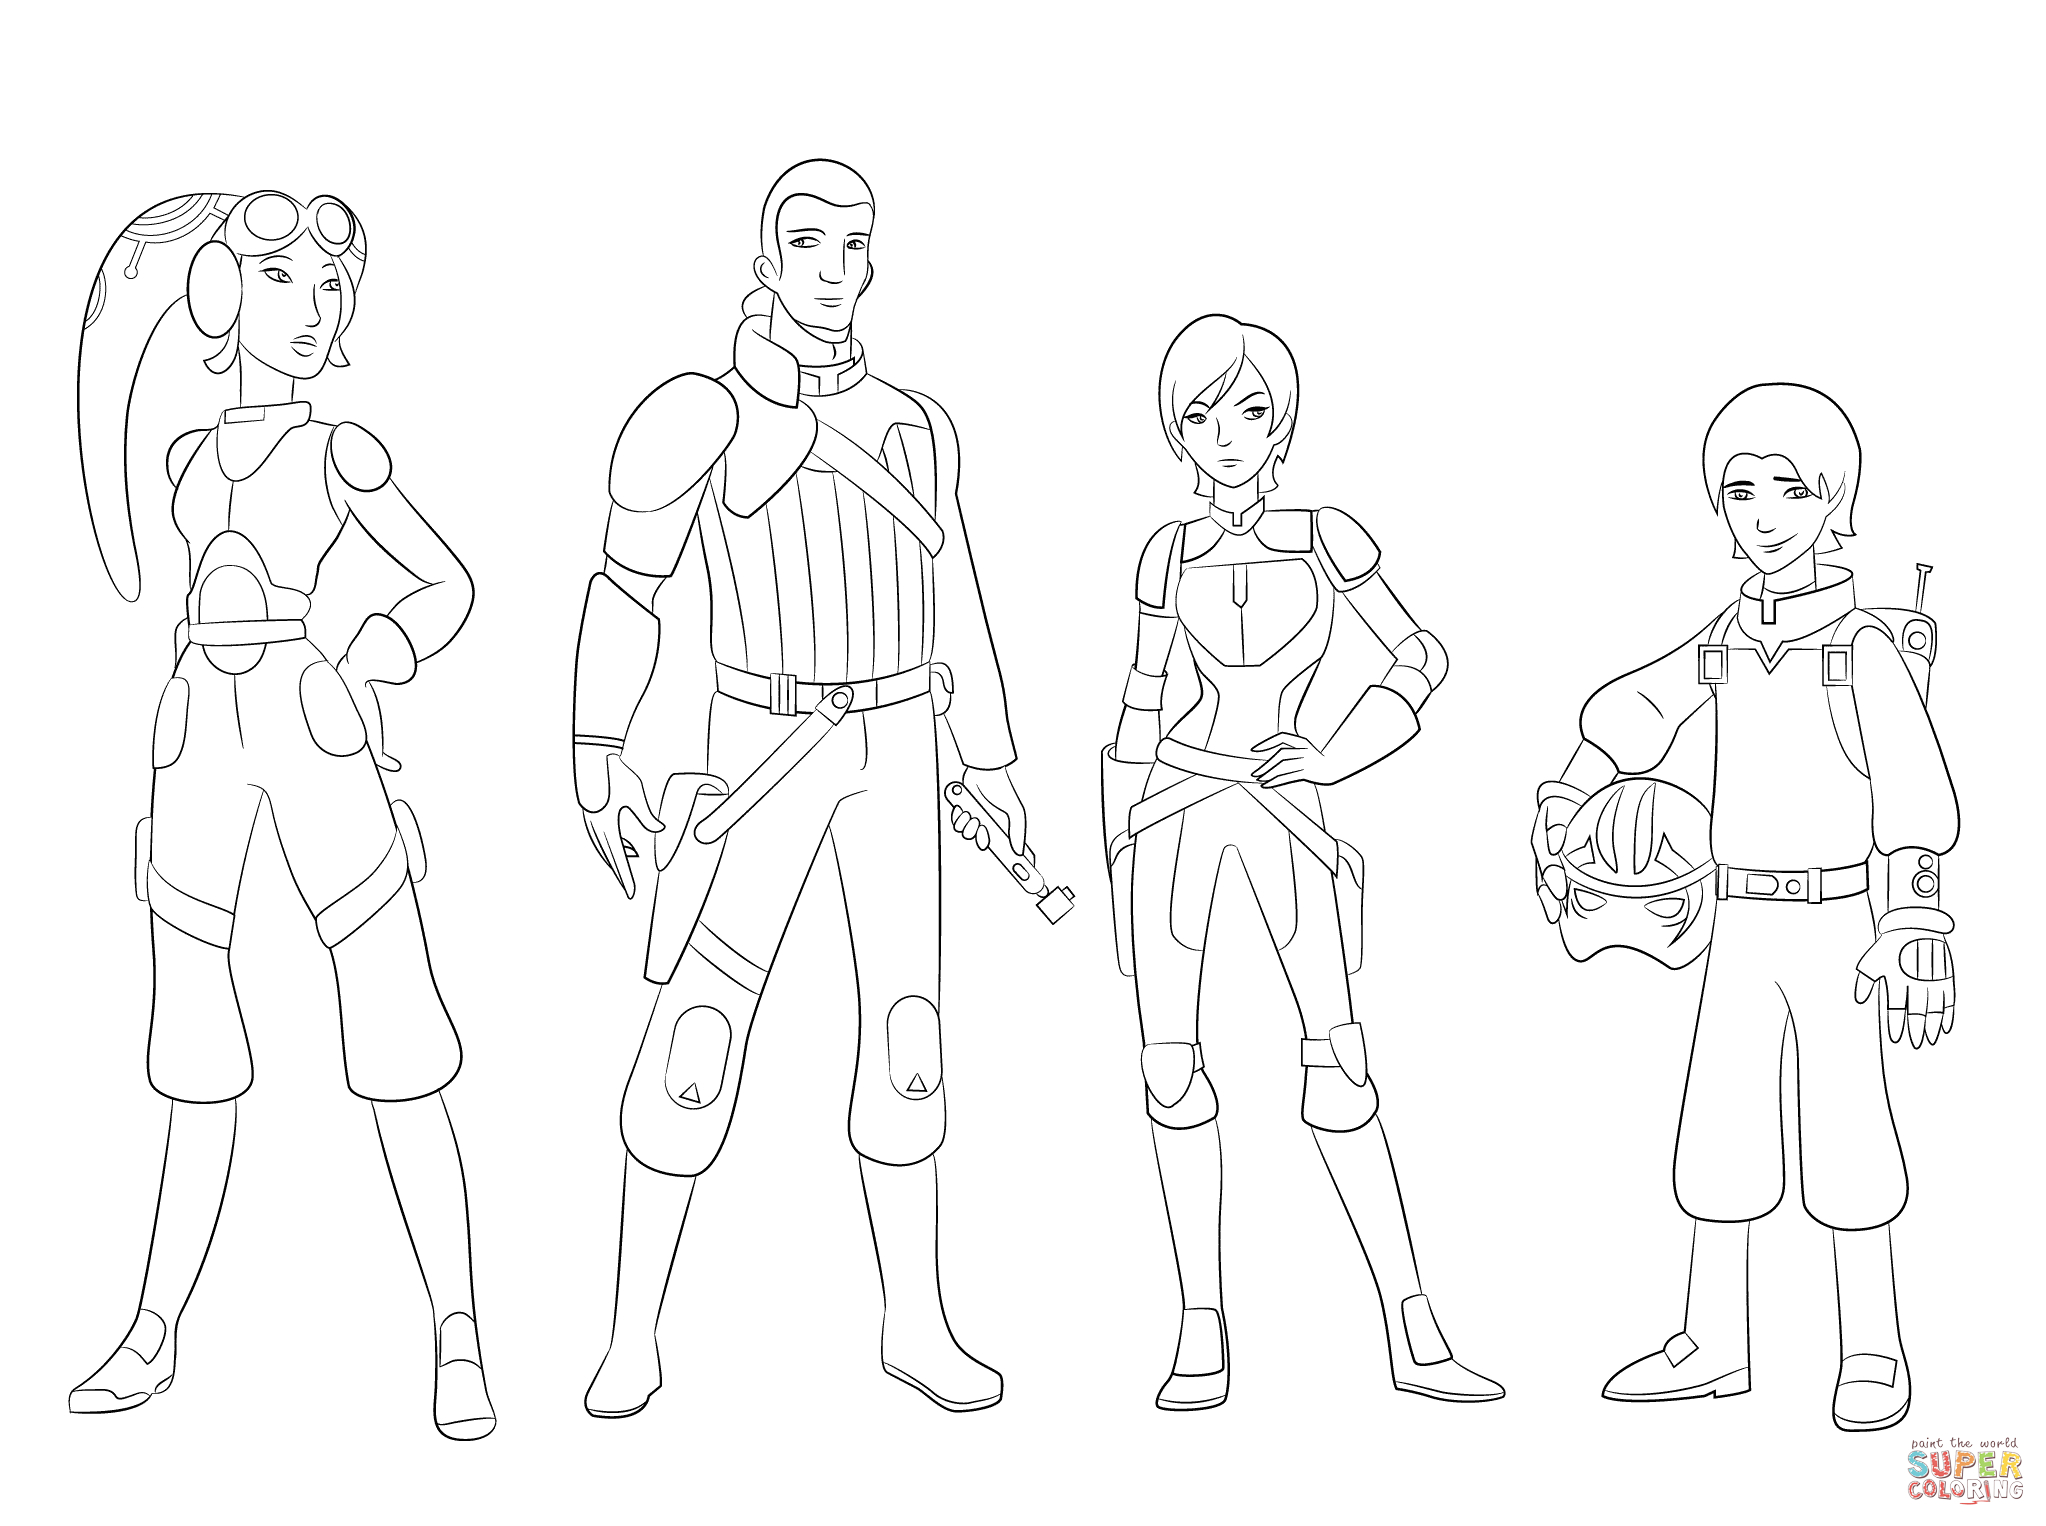 Star Wars Rebels Characters Coloring Page Download Of Polkadots On Parade Star Wars the force Awakens Coloring Pages Collection